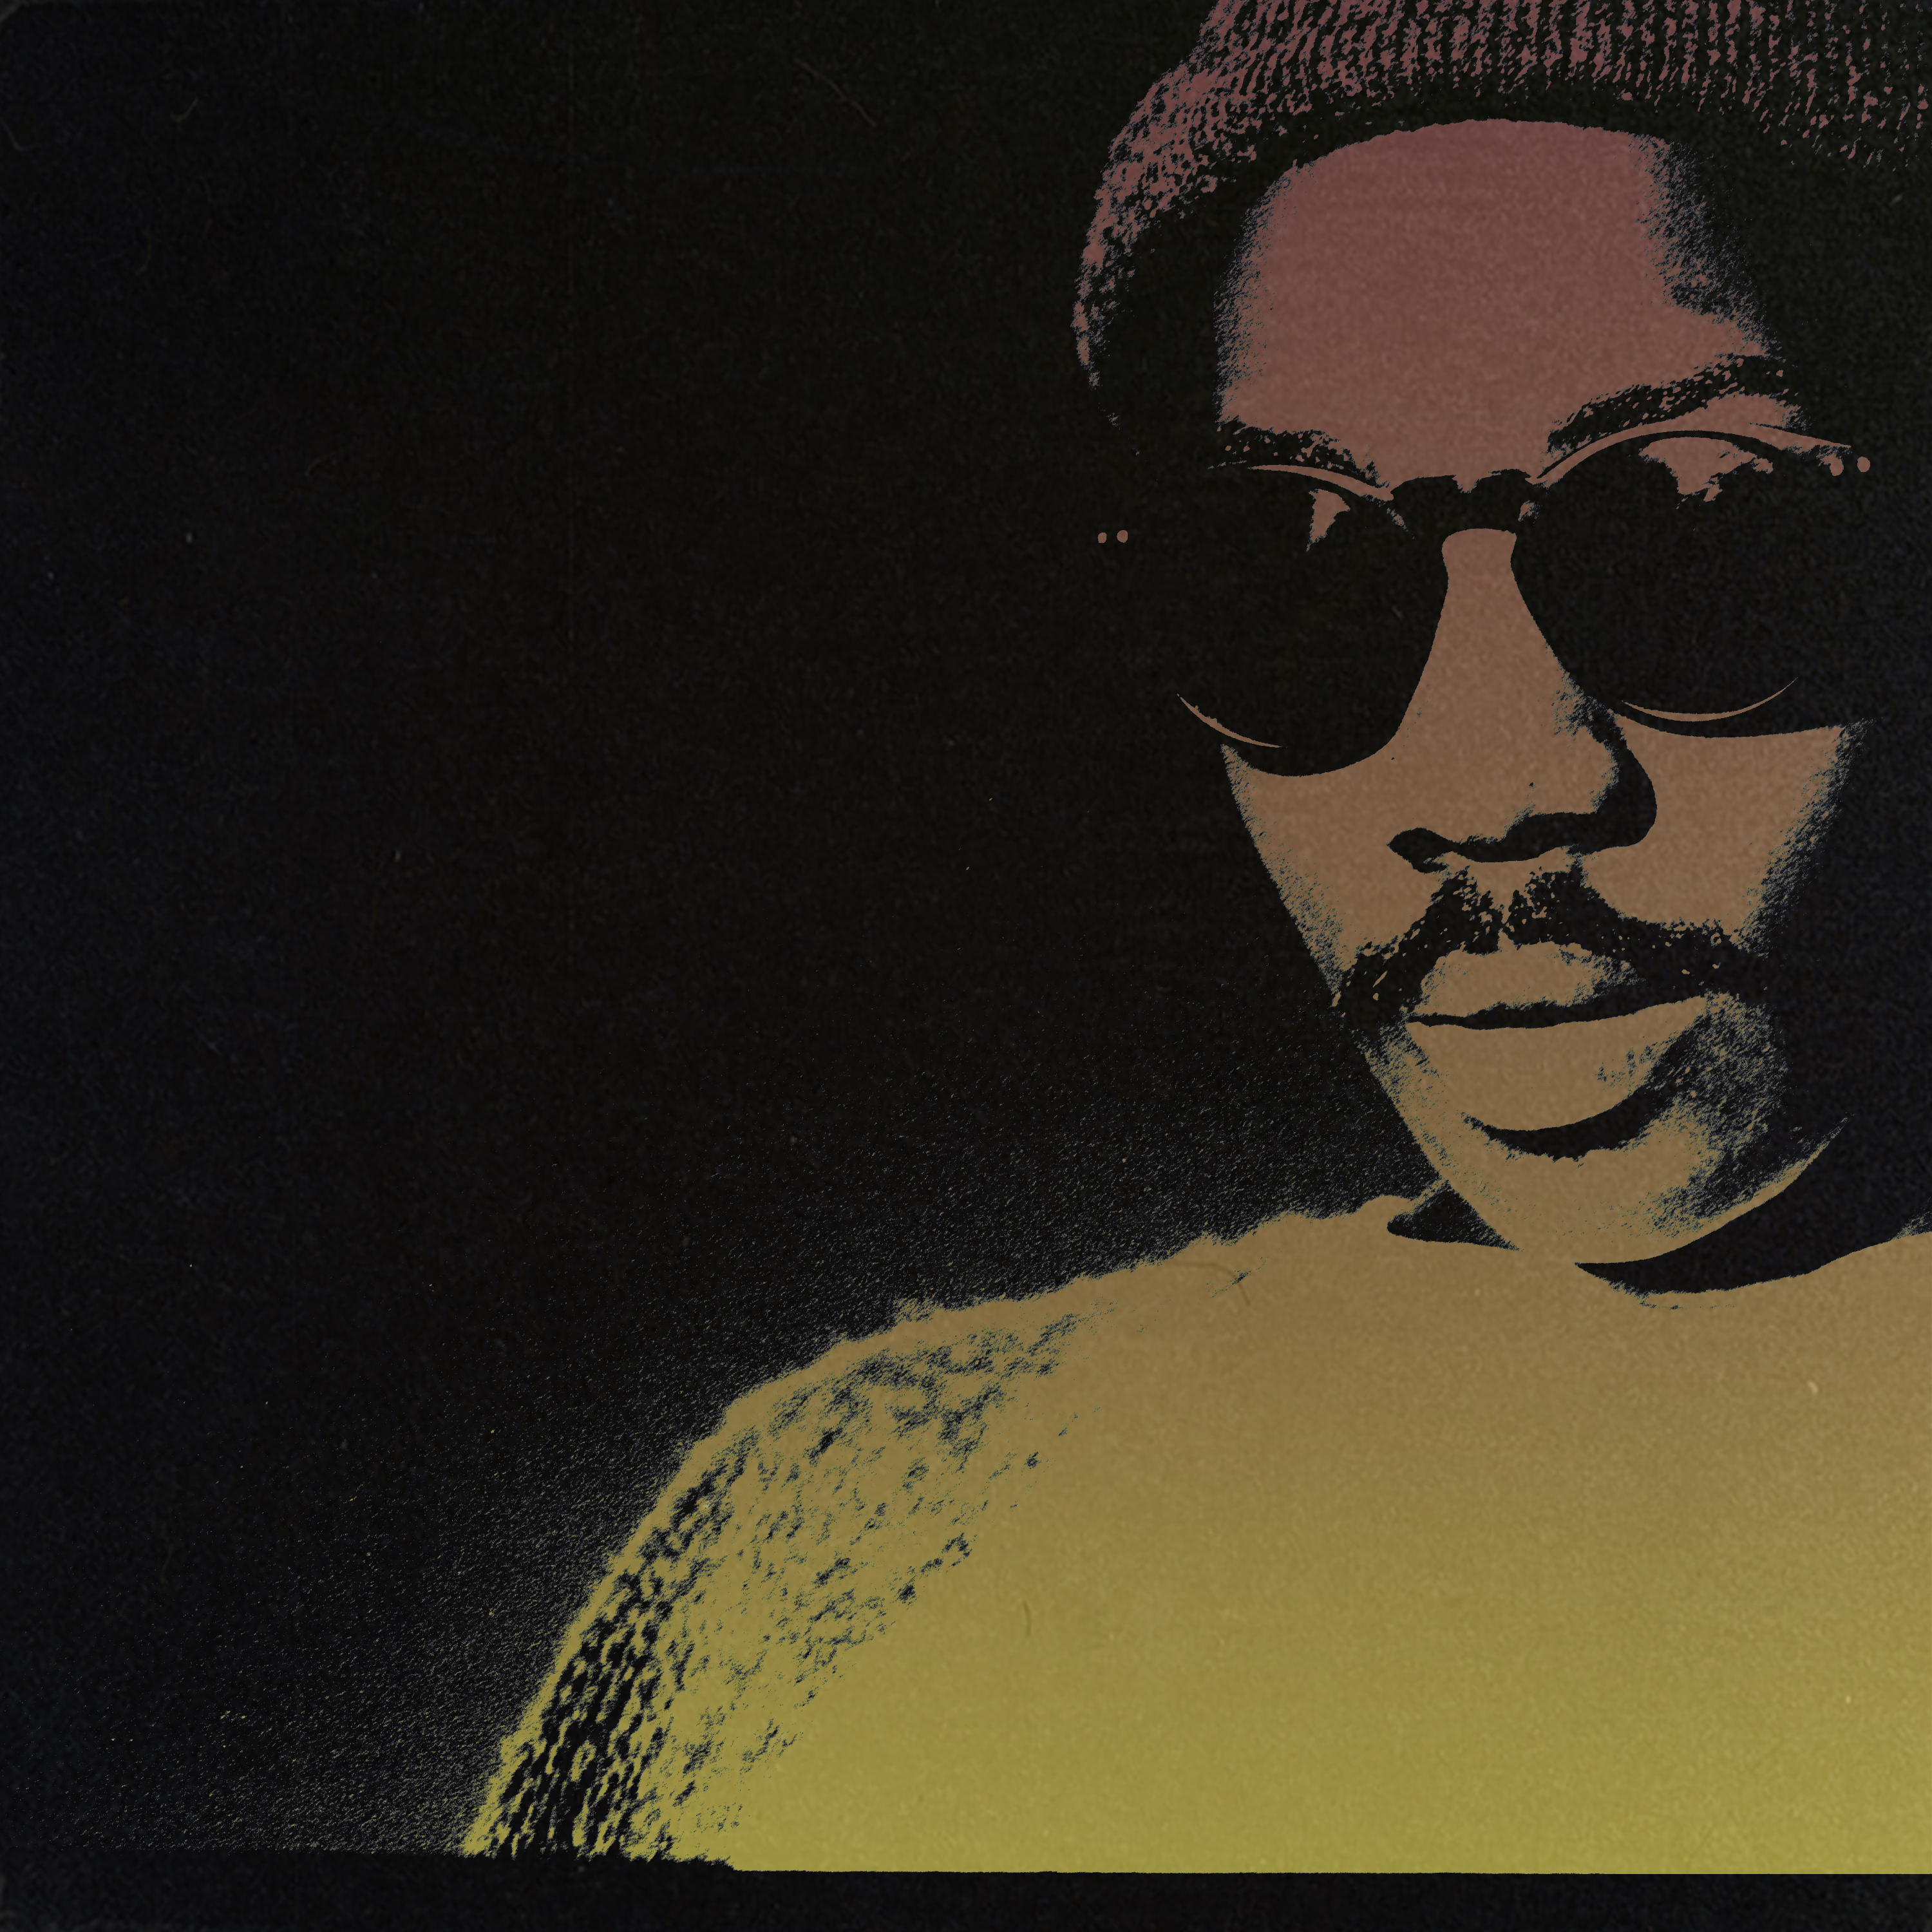 Channel Tres Black Moses album review by Leslie Chu for Northern Transmissions